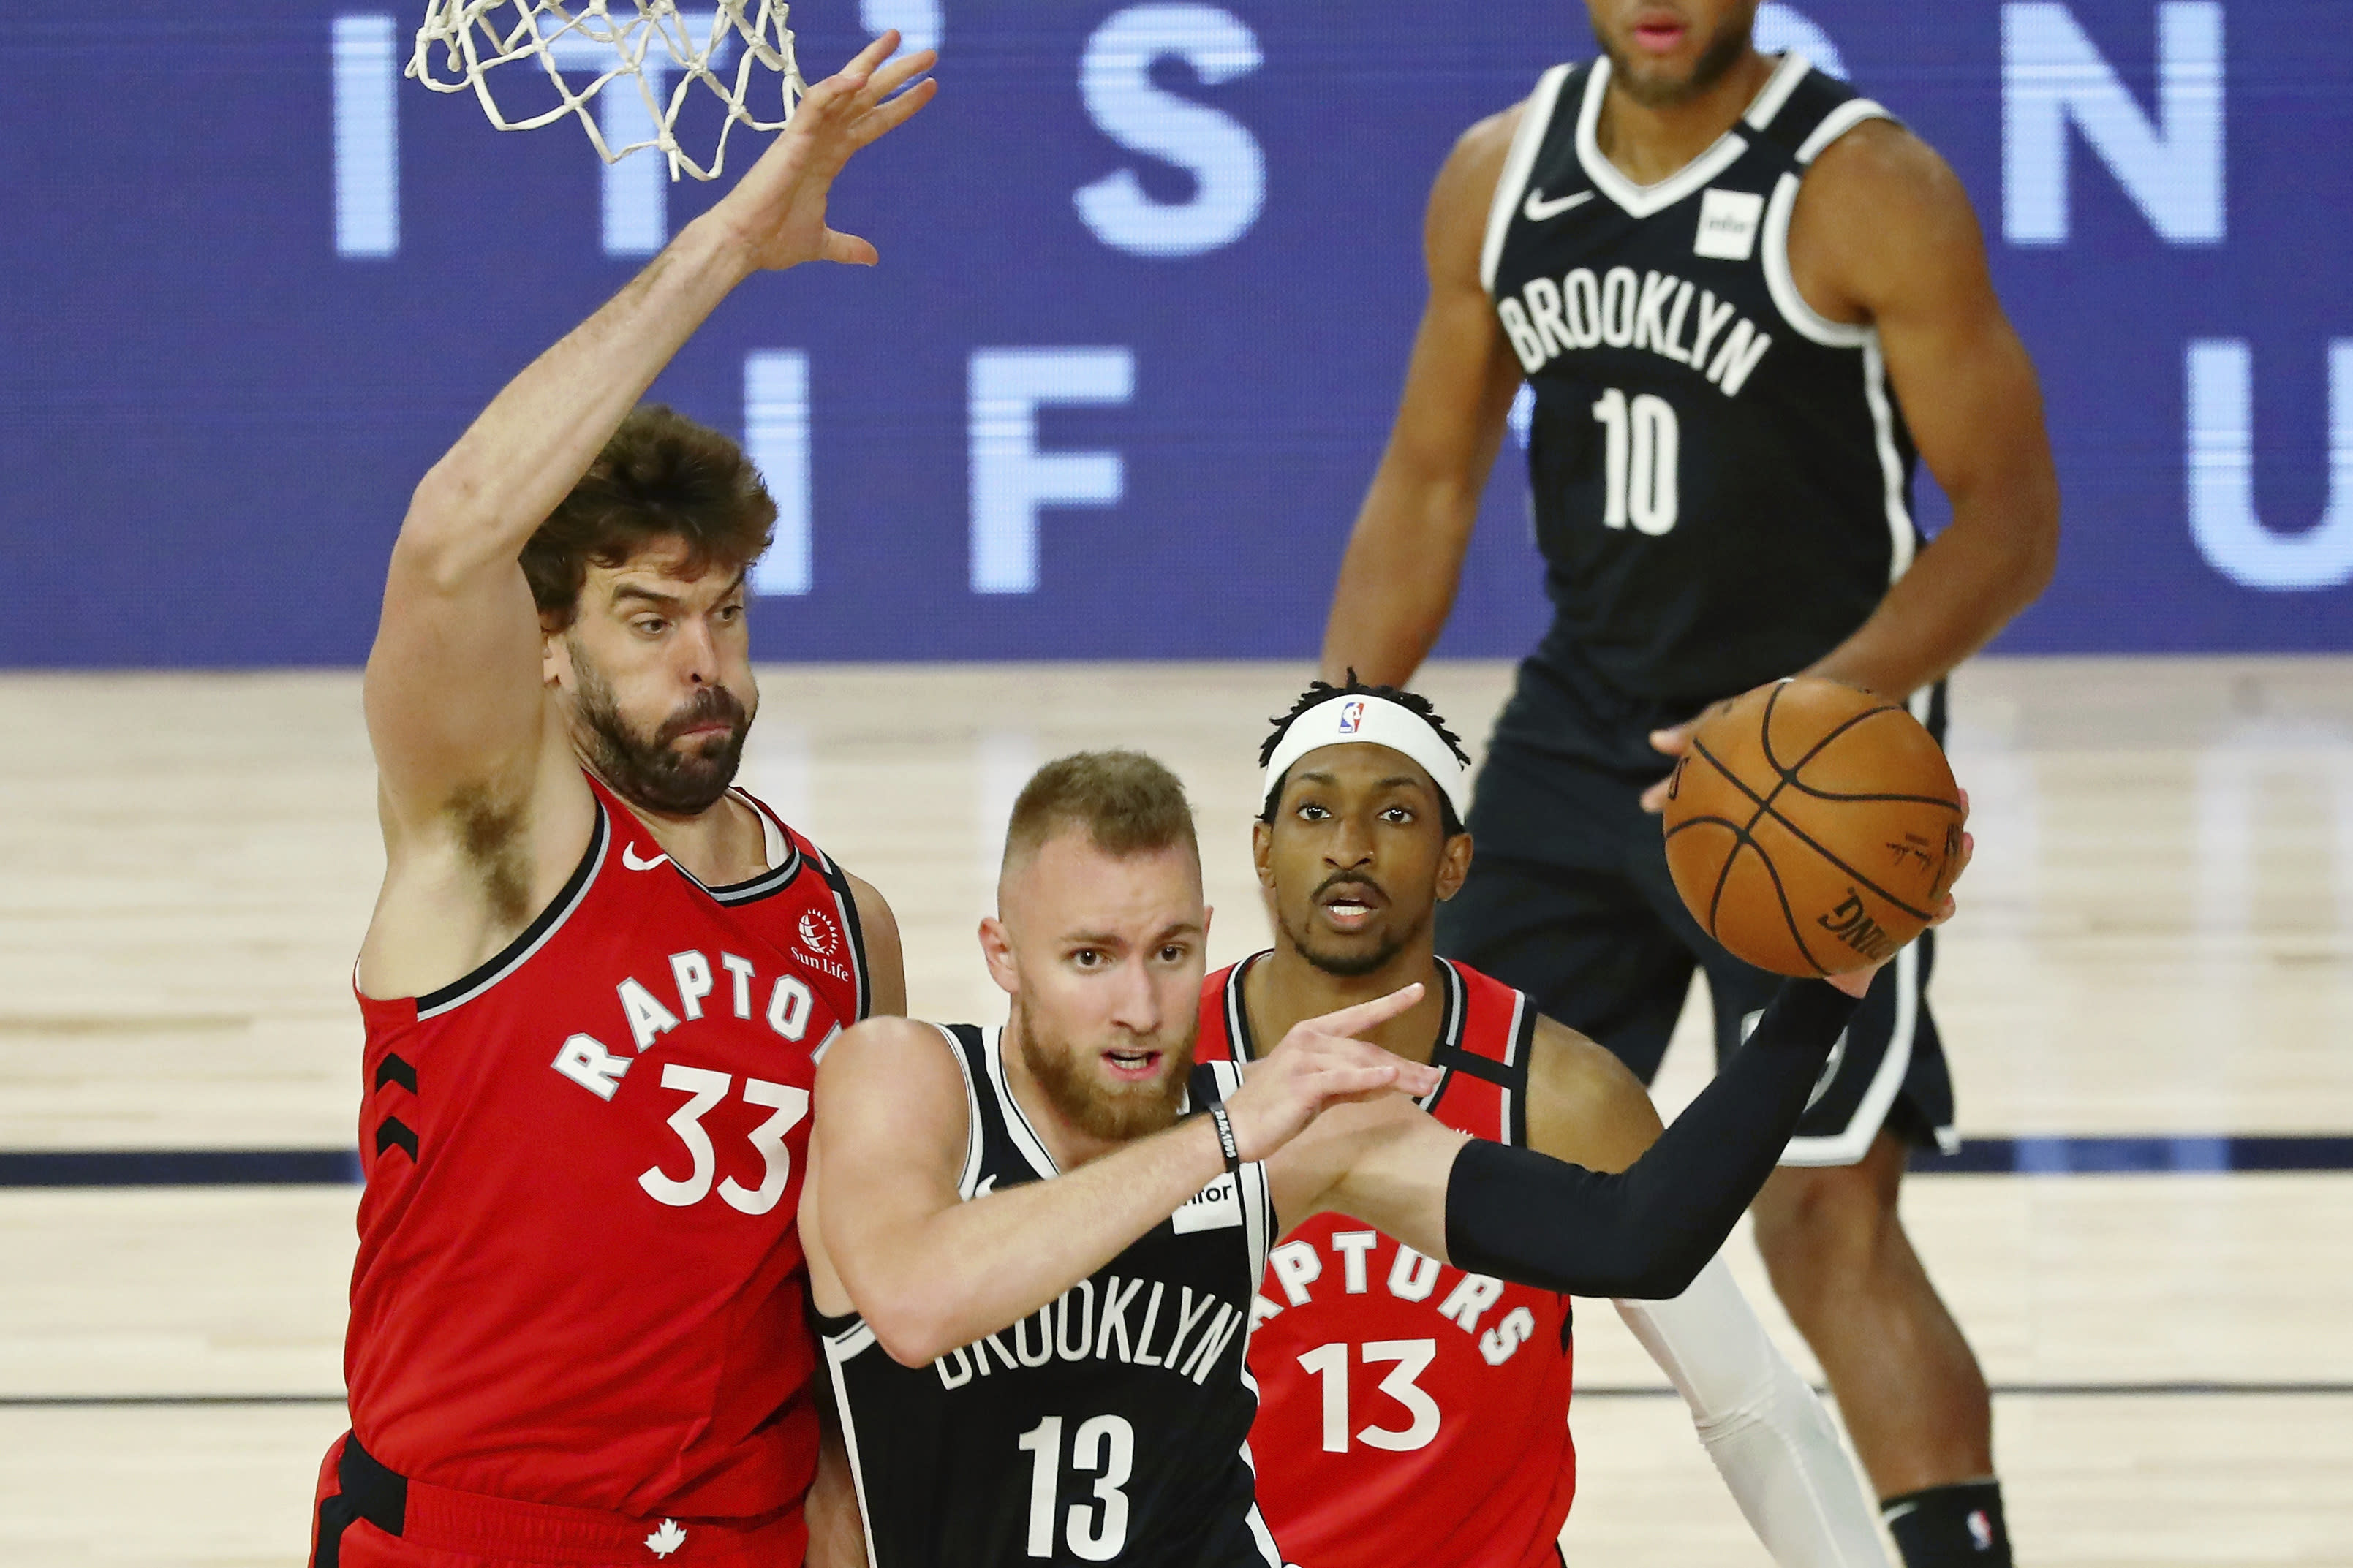 Brooklyn Nets guard Dzanan Musa (13) passes the ball while defended by Toronto Raptors center Marc Gasol (33) during the second half in Game 3 of an NBA basketball first-round playoff series, Friday, Aug. 21, 2020, in Lake Buena Vista, Fla. (Kim Klement/Pool Photo via AP)